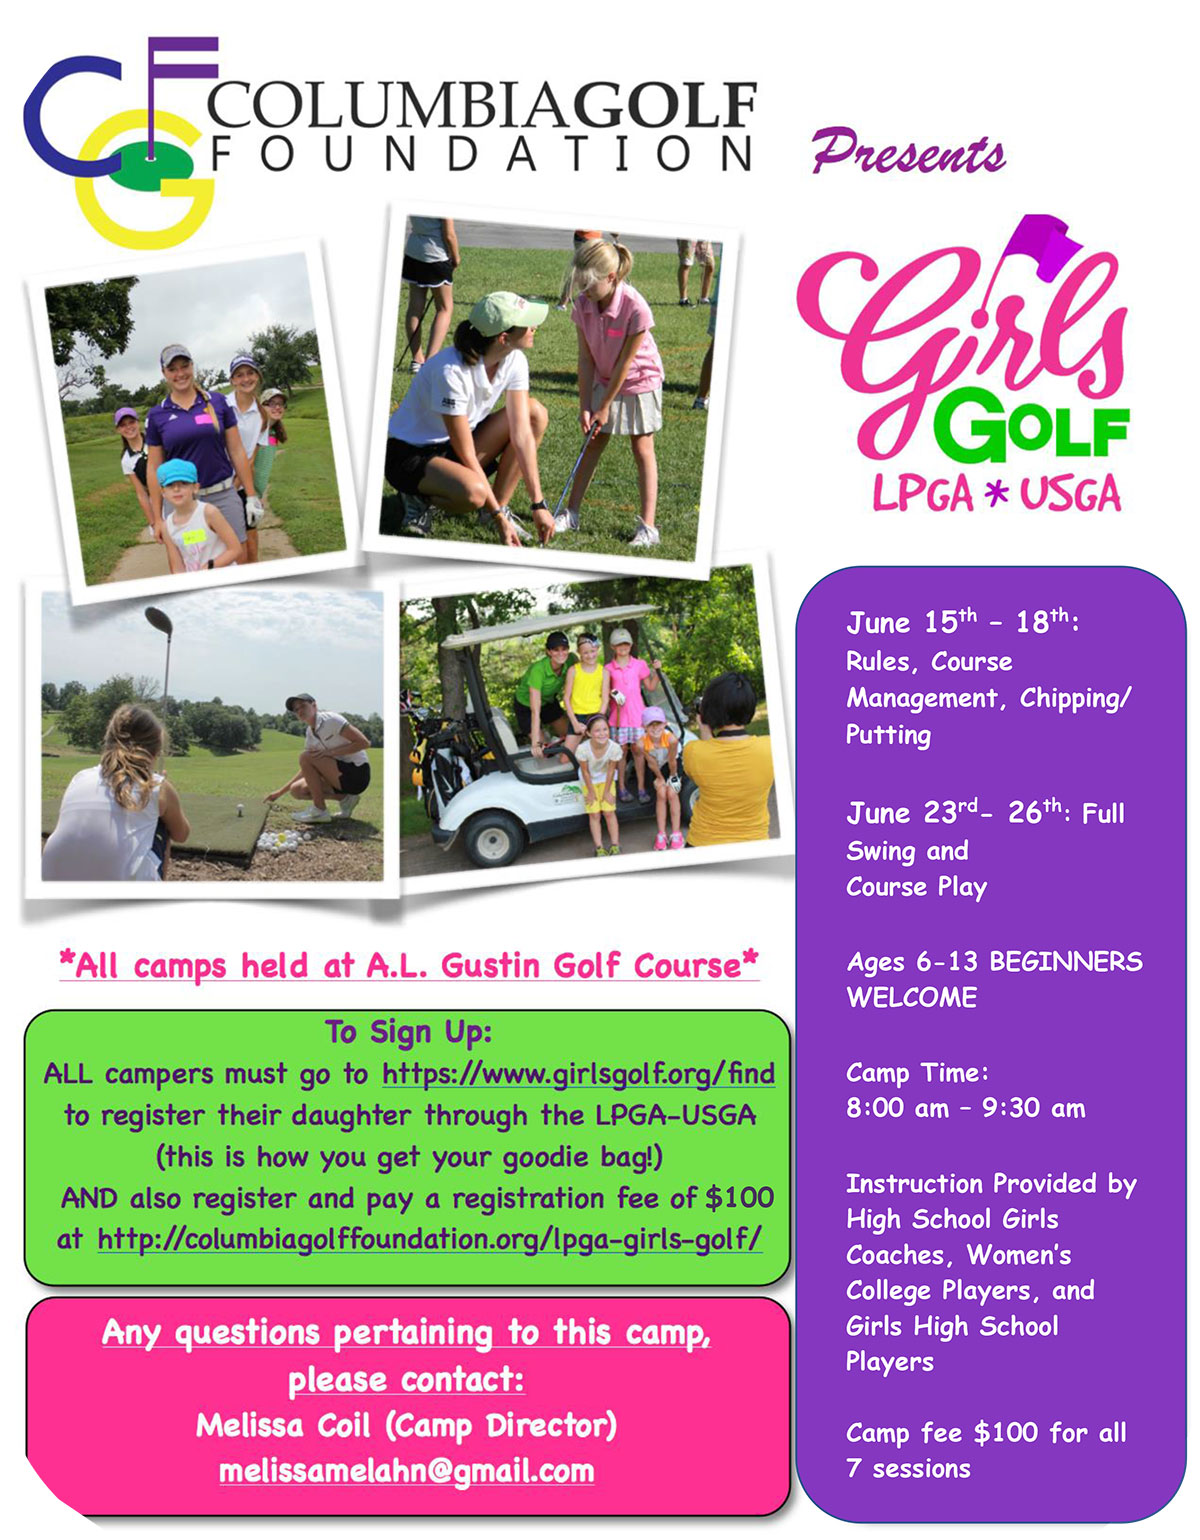 Columbia Golf Foundation Presents the June 2020 LPGA Girls Golf Camp Ladies Professional Golf Association Flyer Brochure Girls Golf